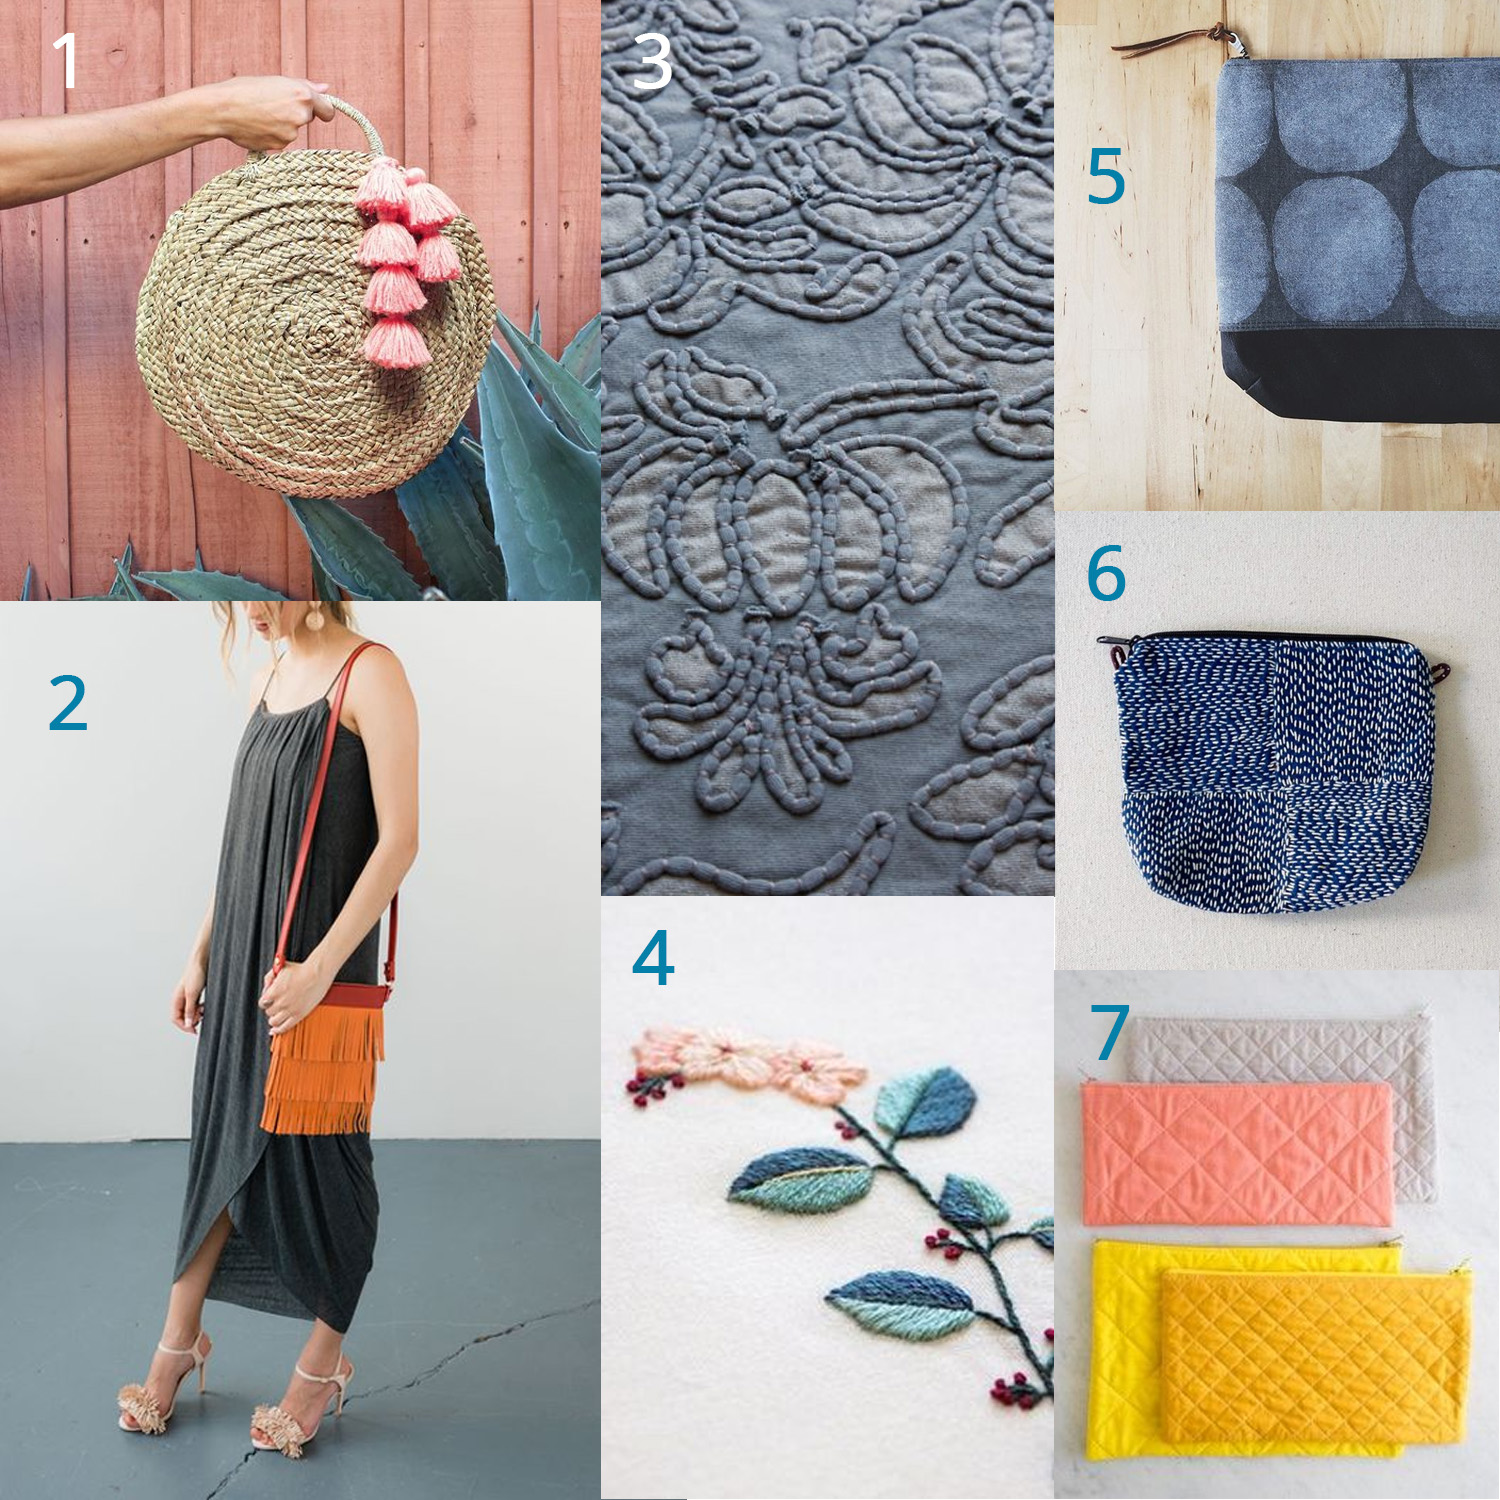 1: tassels and charms  /  2: fringes  /  3: applique techniques  / 4: embroidery and monogram /  5: diy printed fabrics  / 6: sashiko stitching and mending /  7: quilting